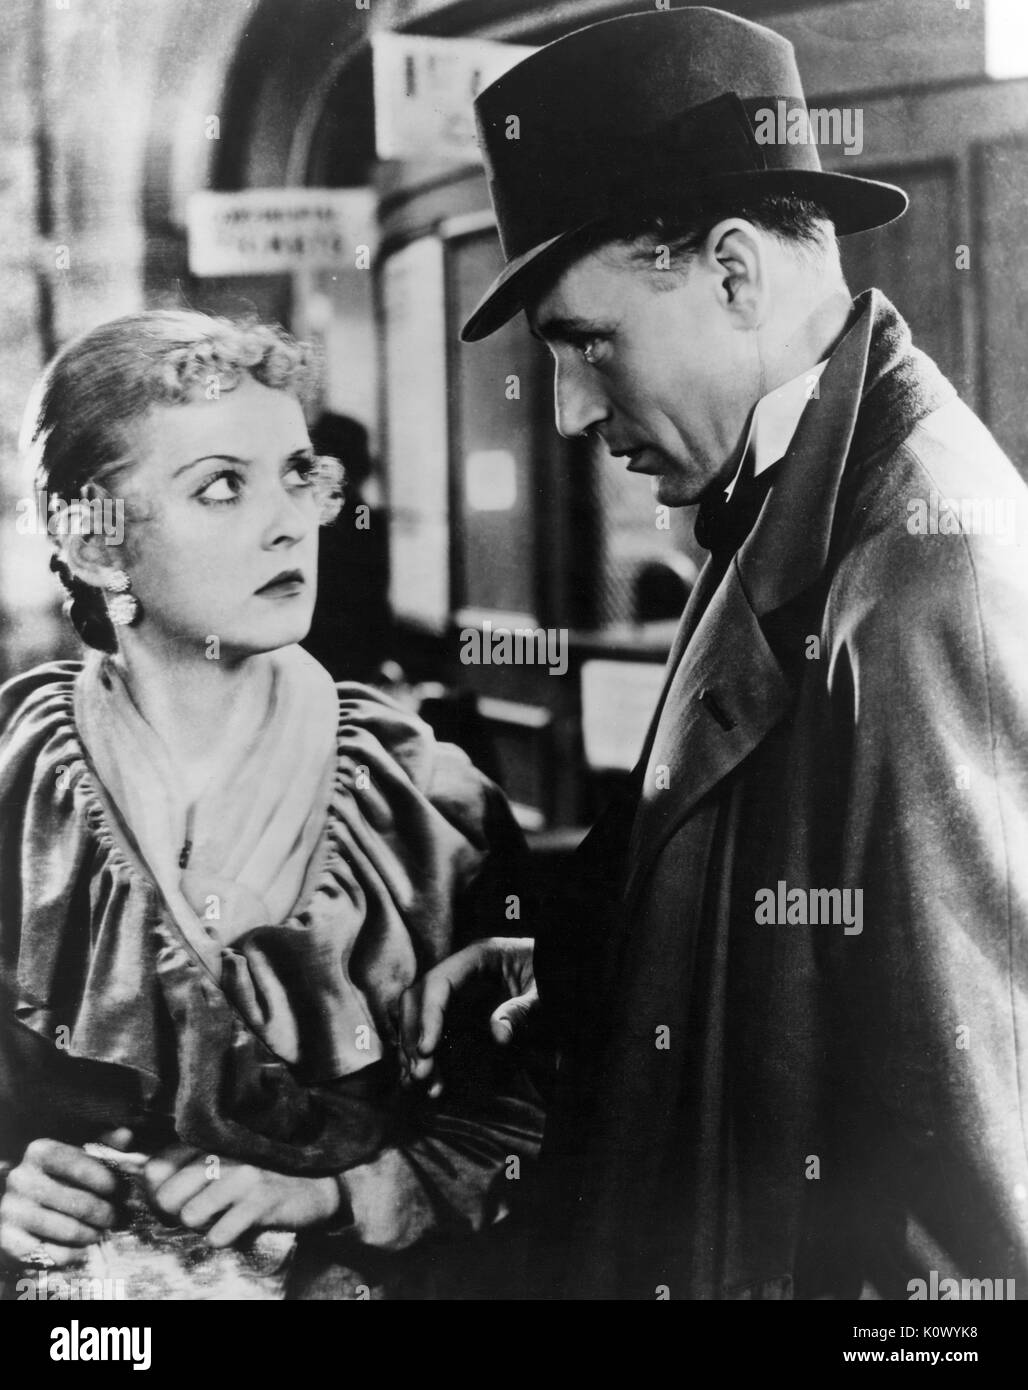 Bette Davis and an unidentified man in a movie still, the man wearing a hat and appearing threatening, Bette Davis with a concerned, defiant expression, 1949. Photo credit Smith Collection/Gado/Getty Images. - Stock Image